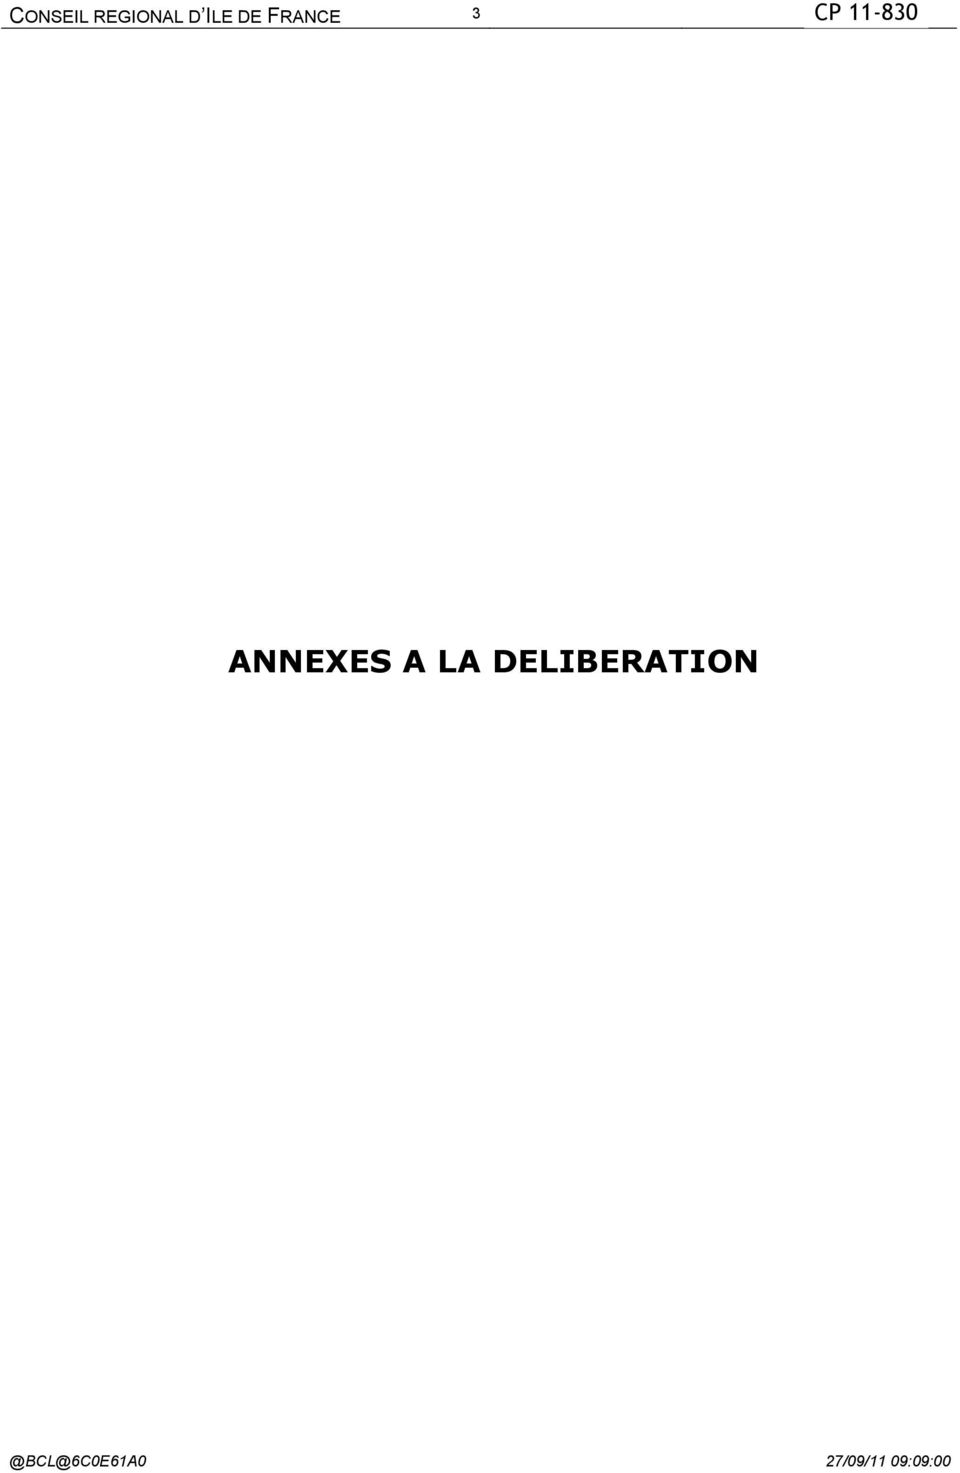 ANNEXES A LA DELIBERATION